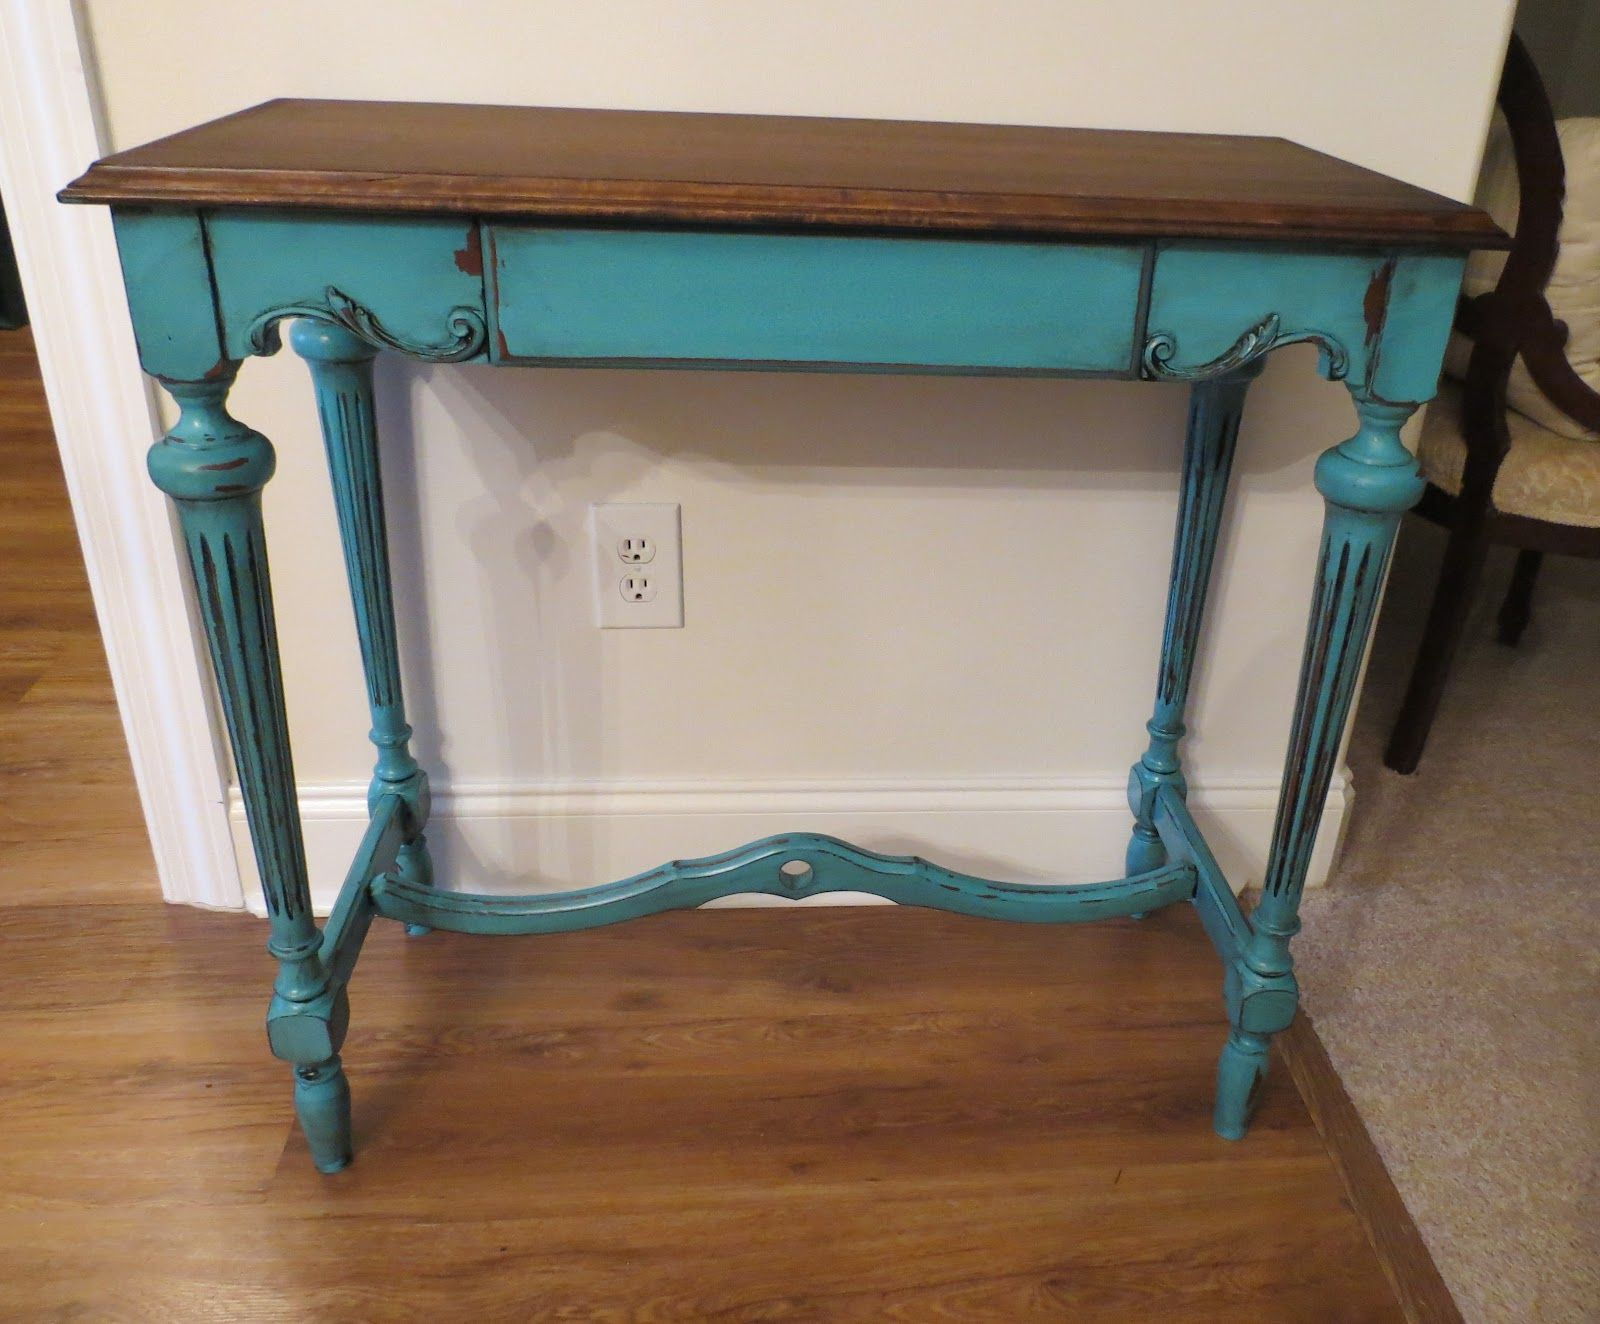 Shabby chic furniture paint colors - Shabby Chic Furniture Paint Colors Best Turquoise Paint Color For Furniture Http Coastersfurniture Org Shabby